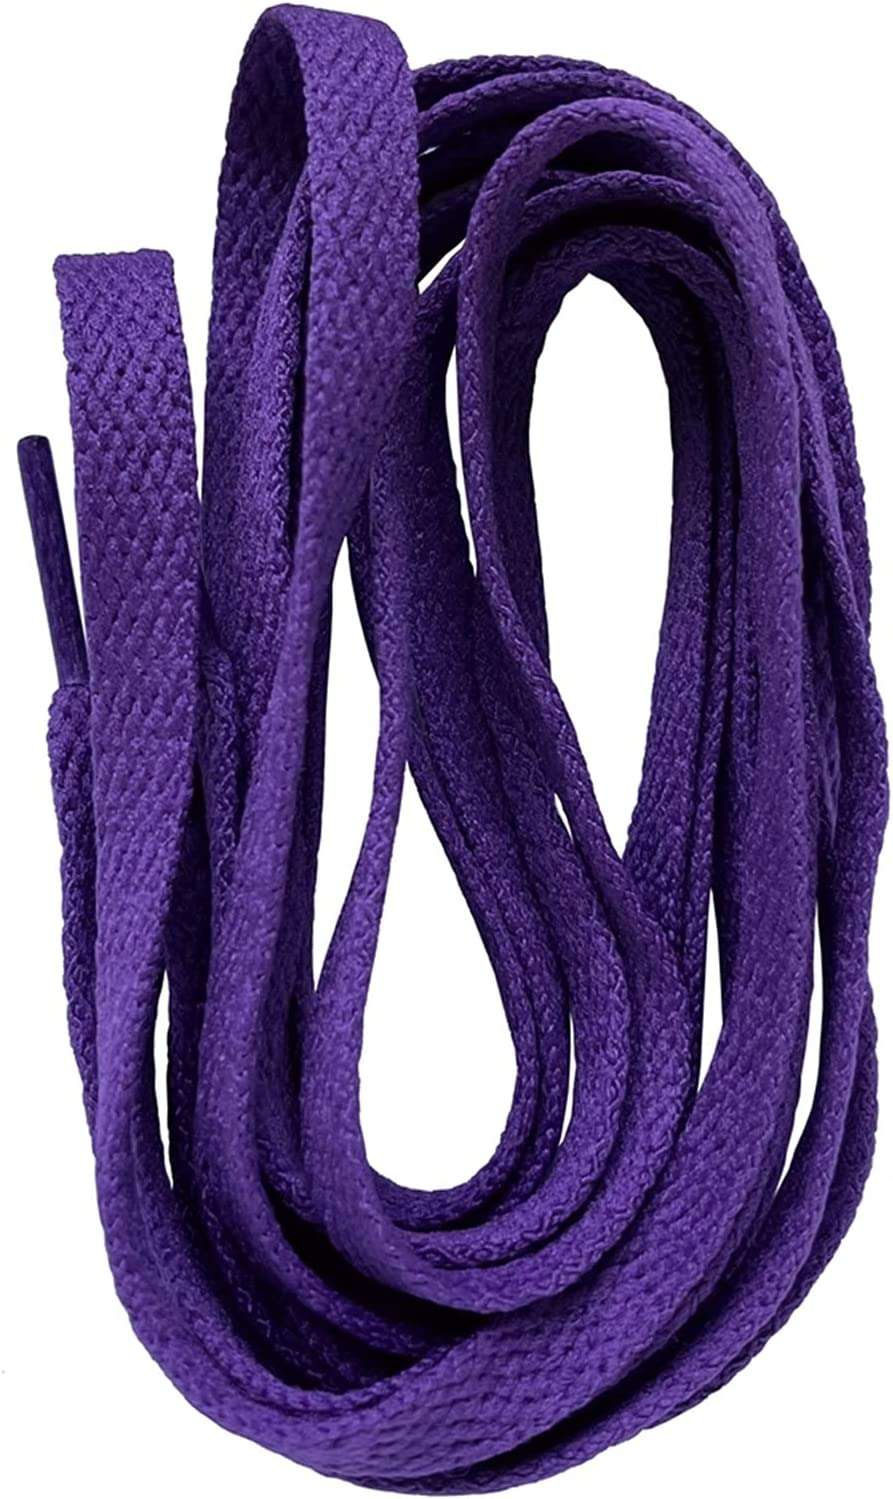 Product ZYQXB Flat Shoelaces Polyester Laces Sport Choice for 0. Shoes Sneakers